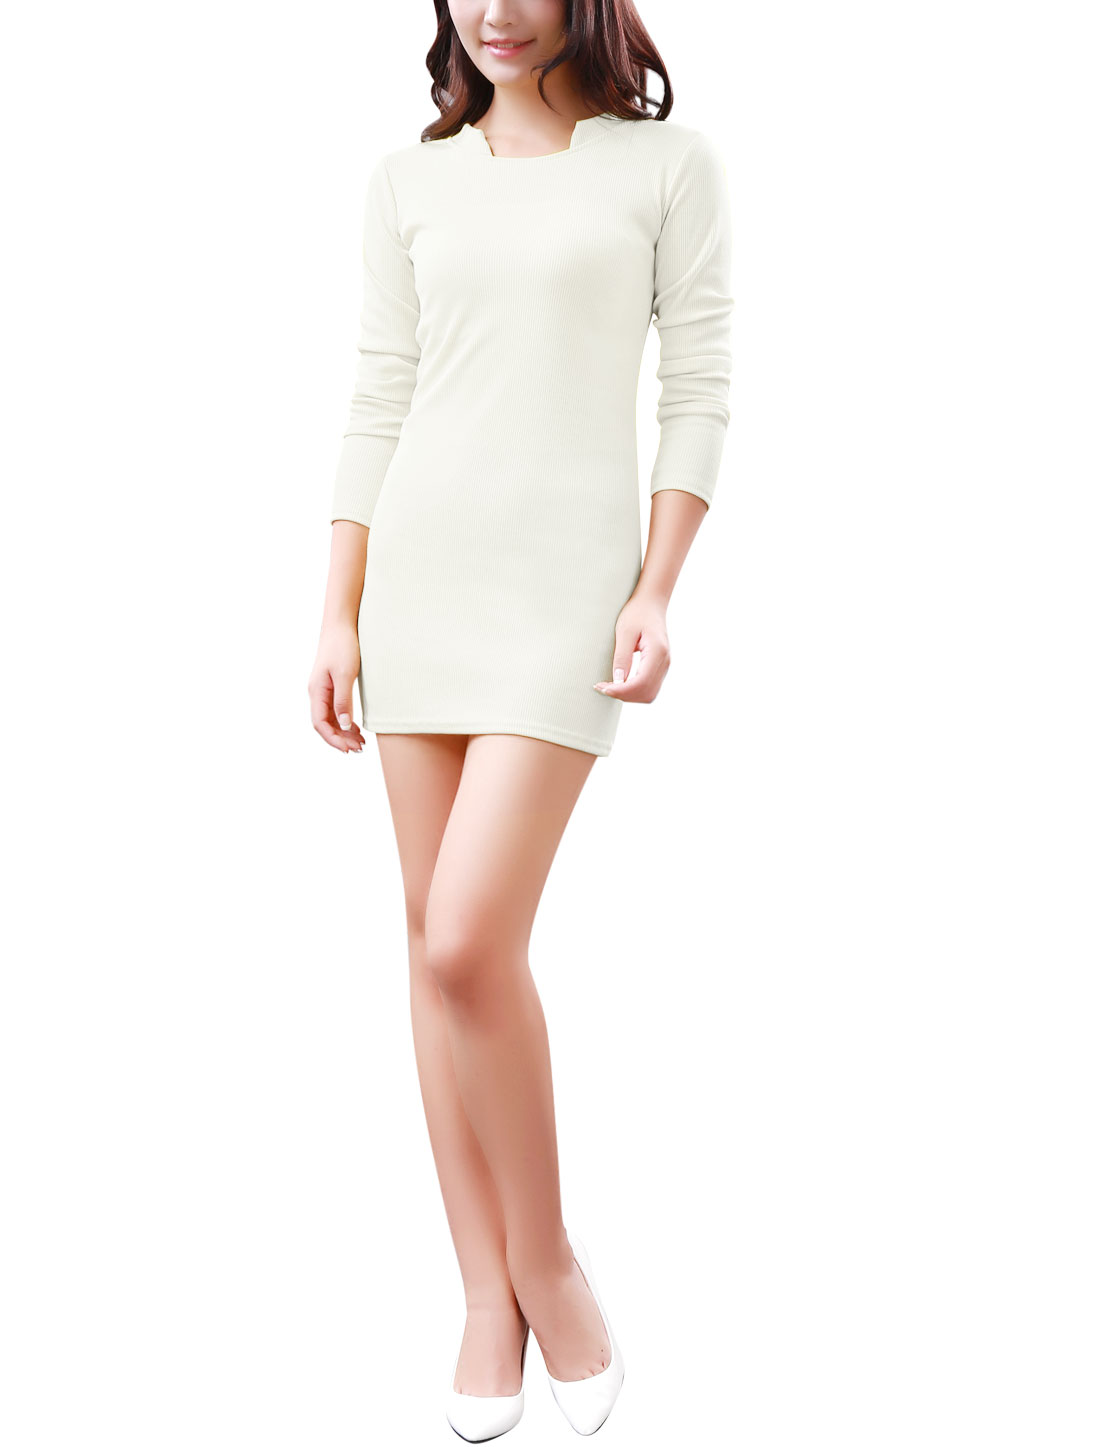 Women Stand Collar Long Sleeves Ribbed Trim Stretchy Knit Dress White S